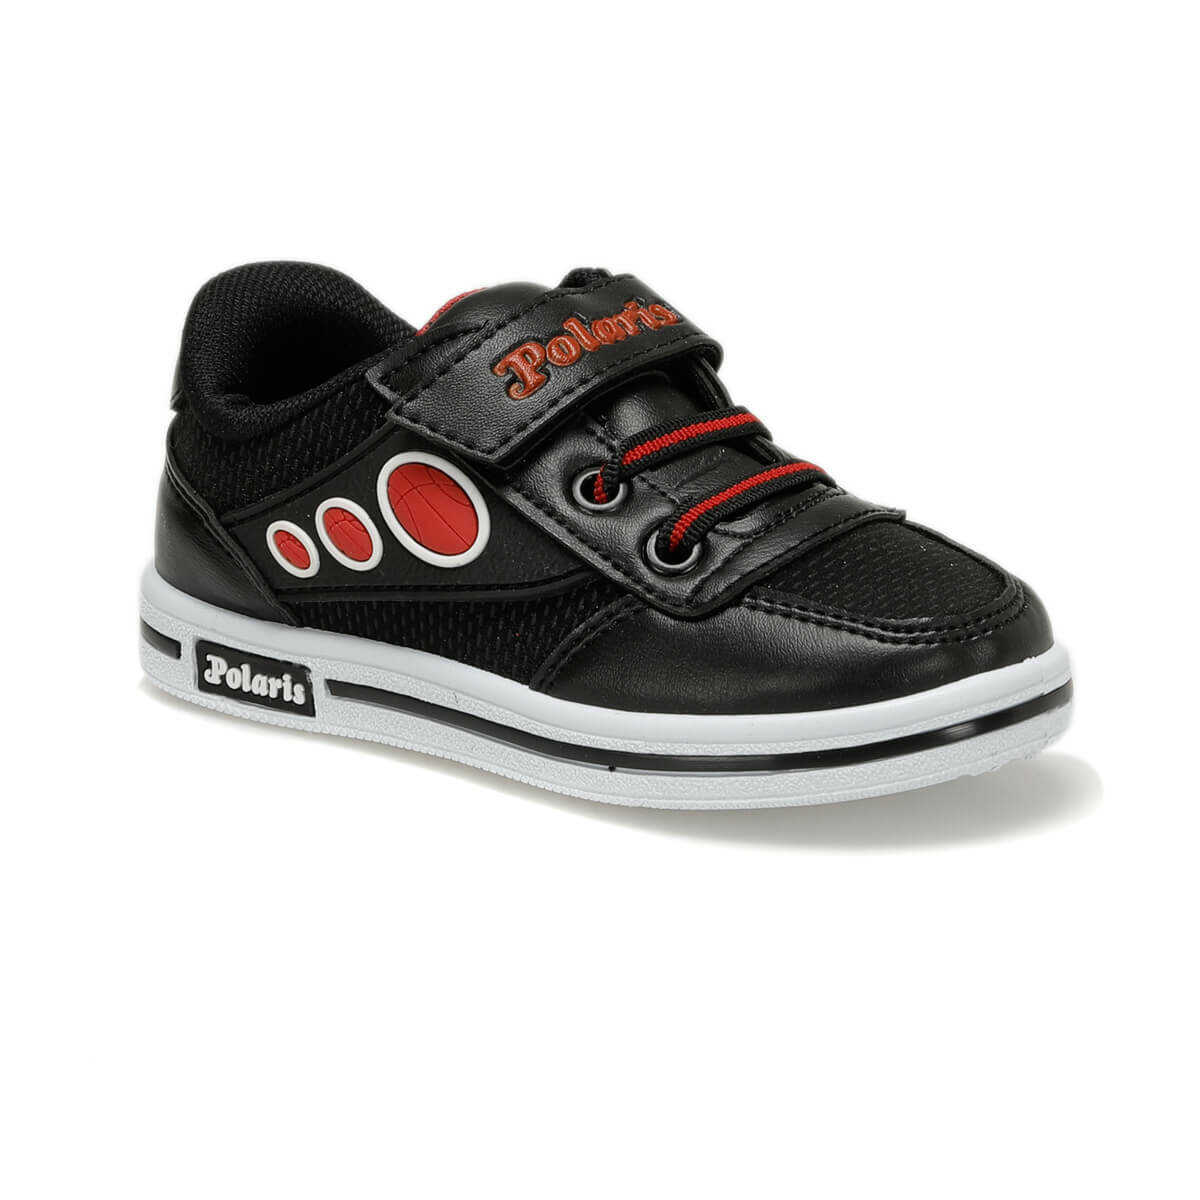 FLO 92.509803.P Black Male Child Sneaker Shoes Polaris